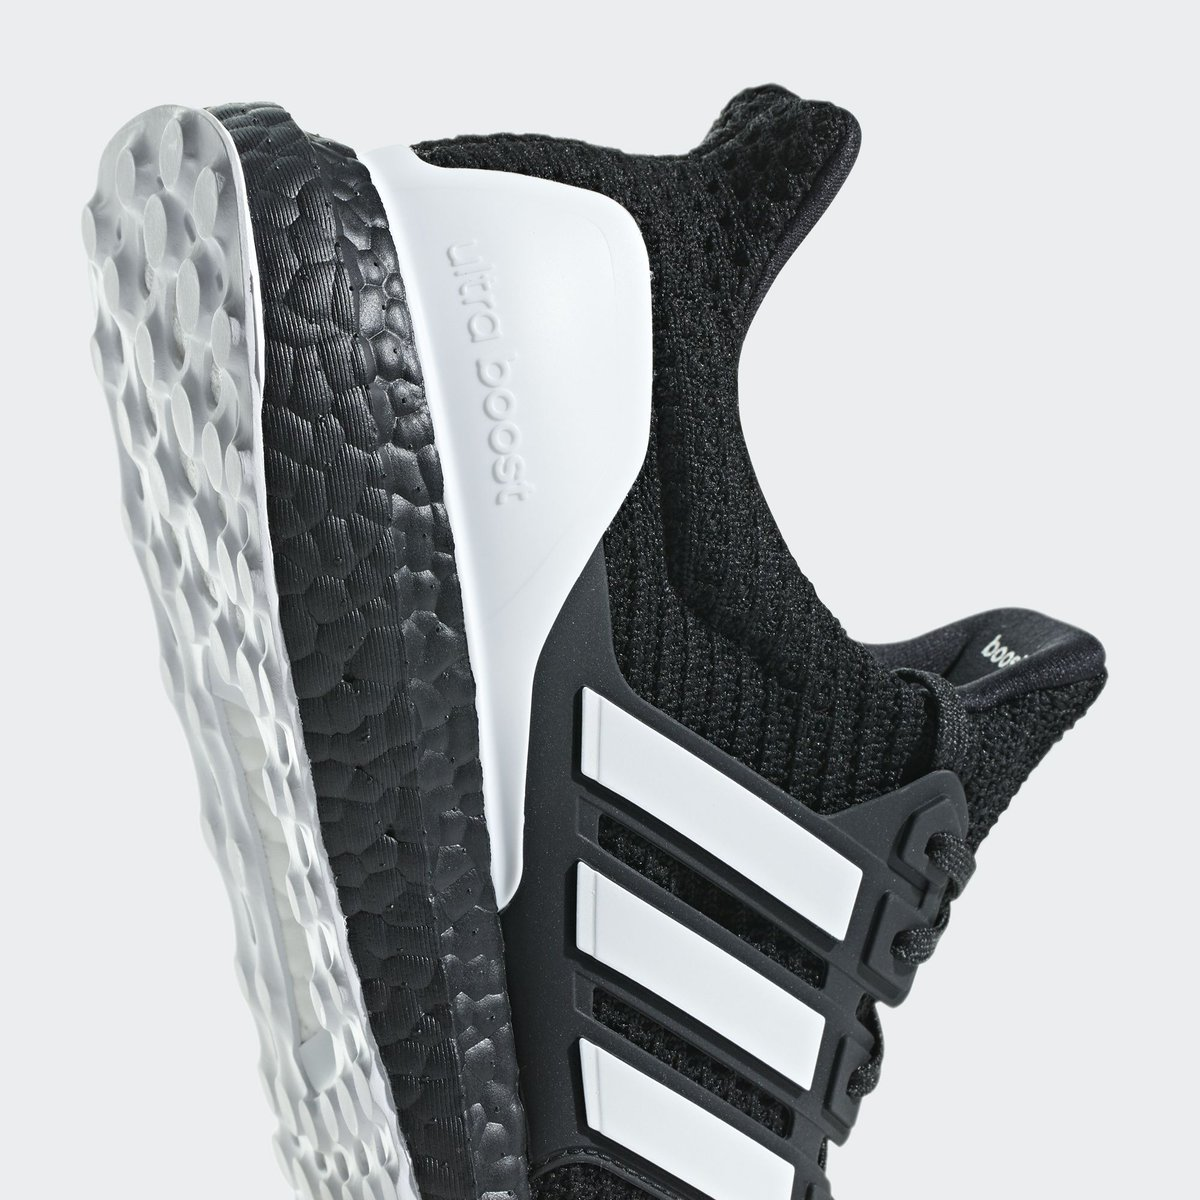 336bf5464a2 adidas alerts on Twitter